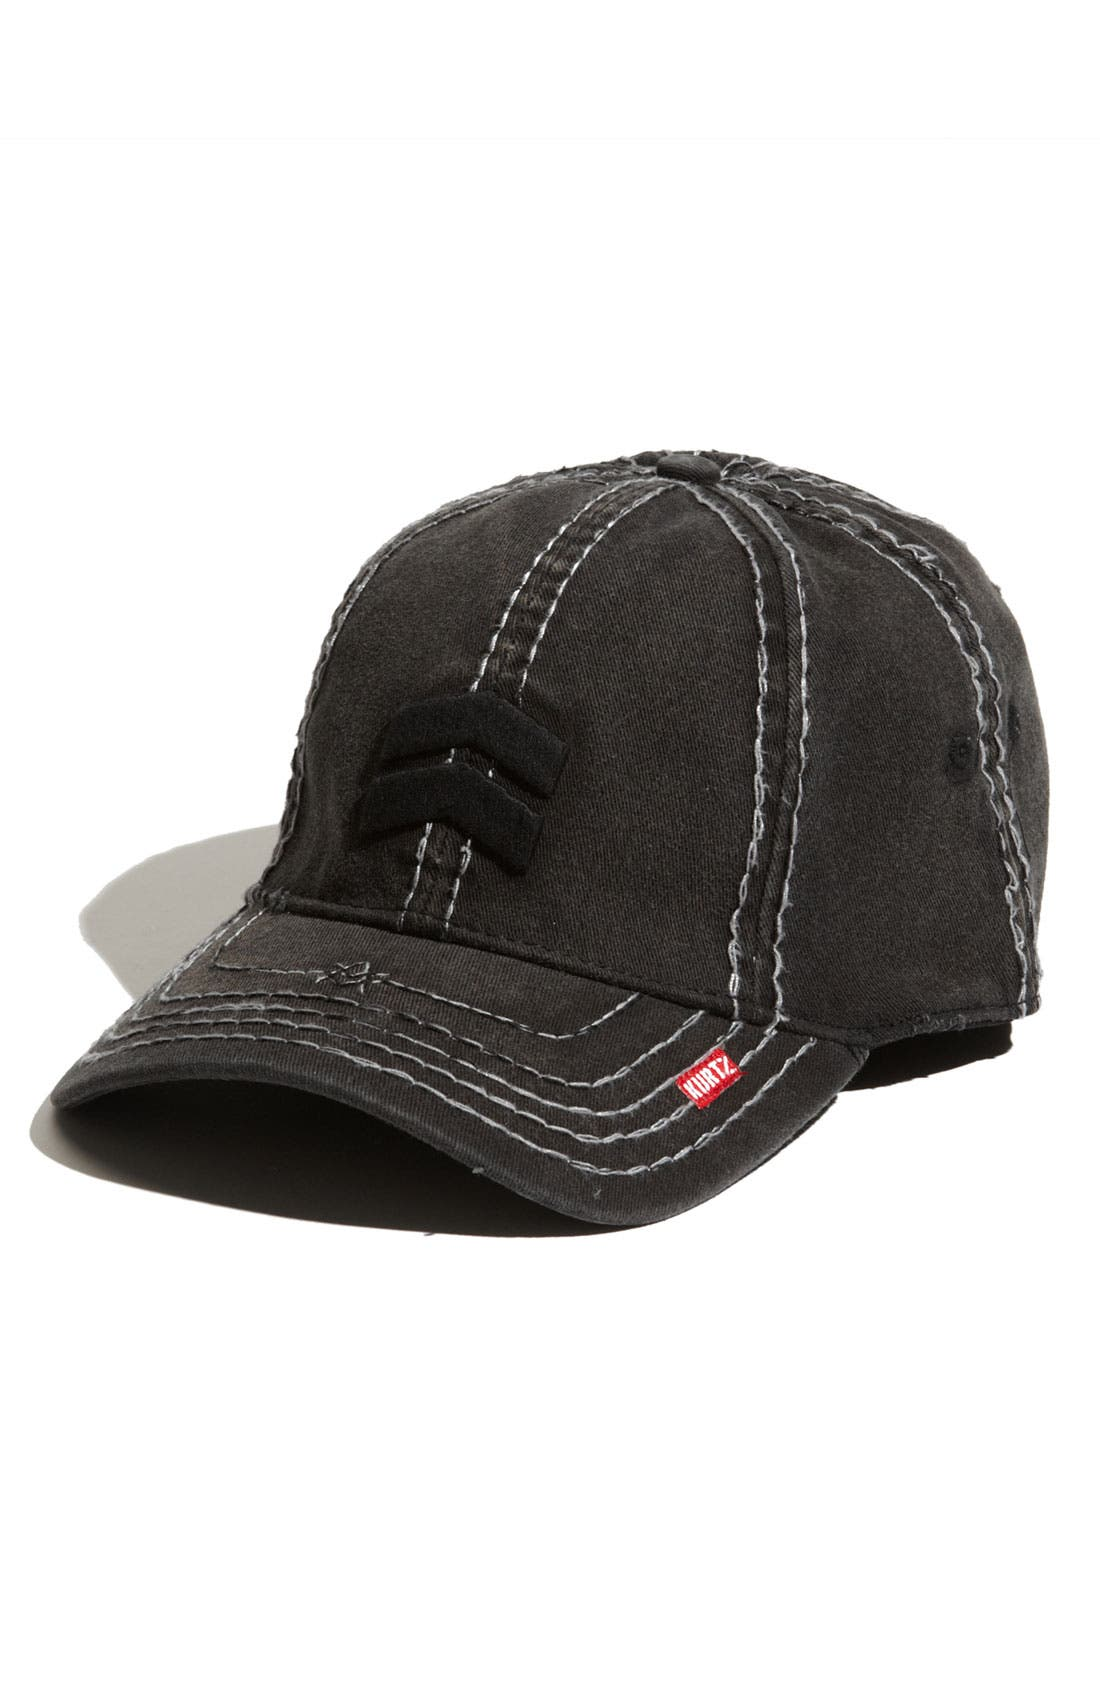 'Albert Aflex' Cap,                             Main thumbnail 1, color,                             Black